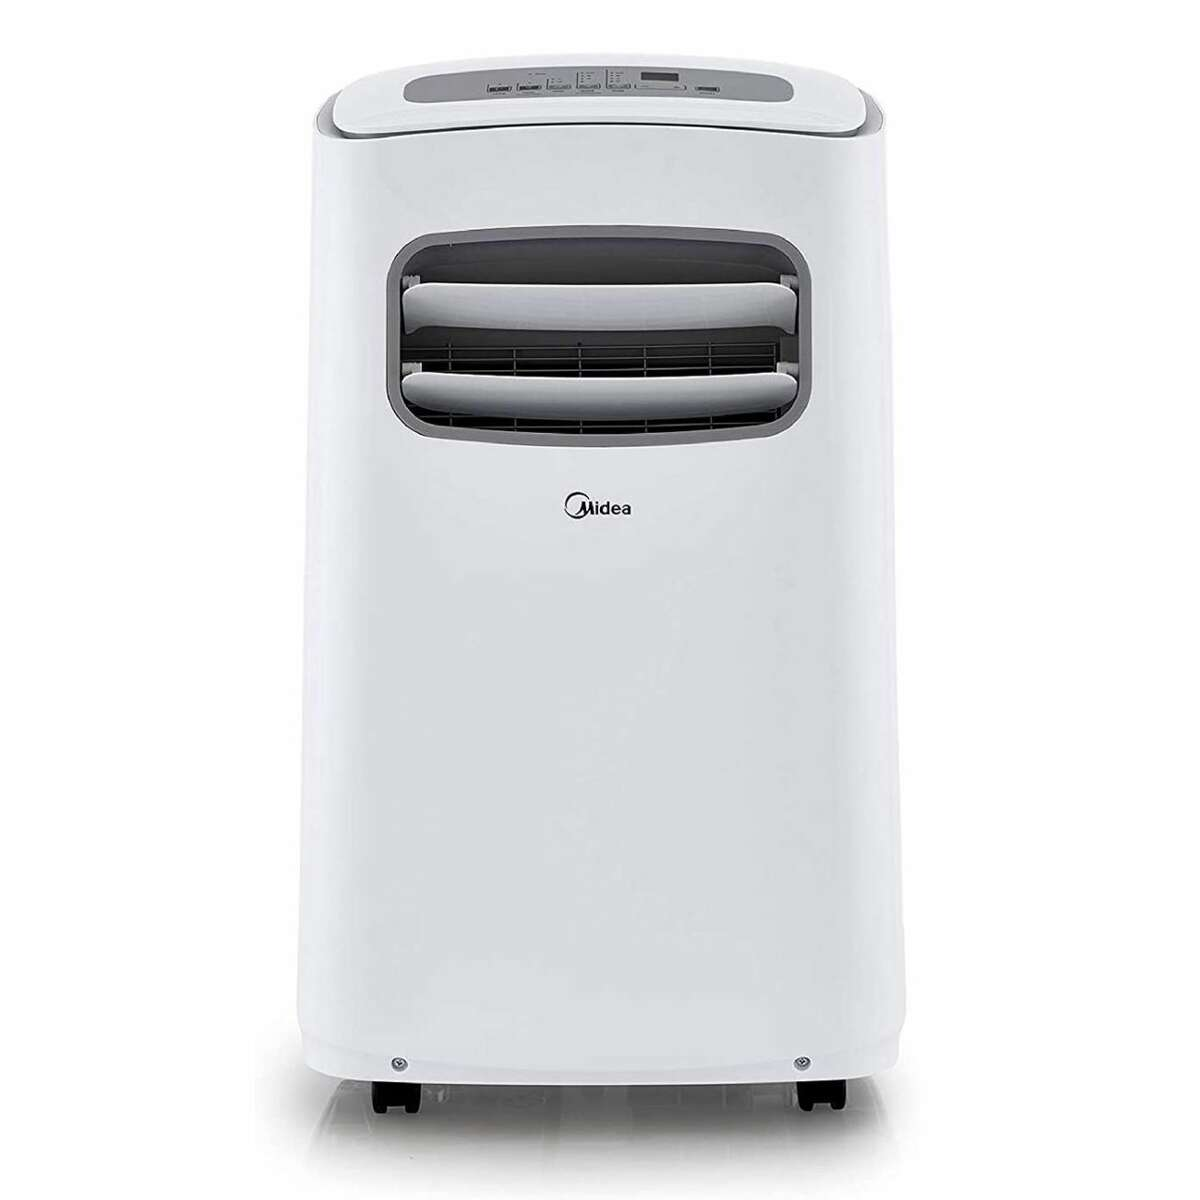 2) Midea Smartcool Portable Air Conditioner: $349.99 Shop Now Because there's nothing worse than going from an AC-cooled room to a stuffy and humid one, portability is key. So if you're looking for a unit that can follow you around an un-air-conditioned apartment, opt for this pick by Midea with the ability to cool and dehumidify the air in your space. The well-priced Smartcool AC will allow you to easily control it via Amazon Alexa and Google Assistant voice commands, a mobile app, or the bundled remote control. Its built-in control panel is also impressively intuitive. The air conditioner has a relatively quiet operation. Its built-in proximity sensor can also adjust the temperature based on your distance from the appliance. Midea has equipped the device with a washable filter for easy maintenance. The maximum cooling capacity of the air conditioner measures 10,000 BTU, making it suitable for a small room. Like all portable air conditioners, the Midea Smartcool AC is easy to install, so long as you have a proper window opening for its hot air exhaust. You can easily move the device around via built-in wheels.